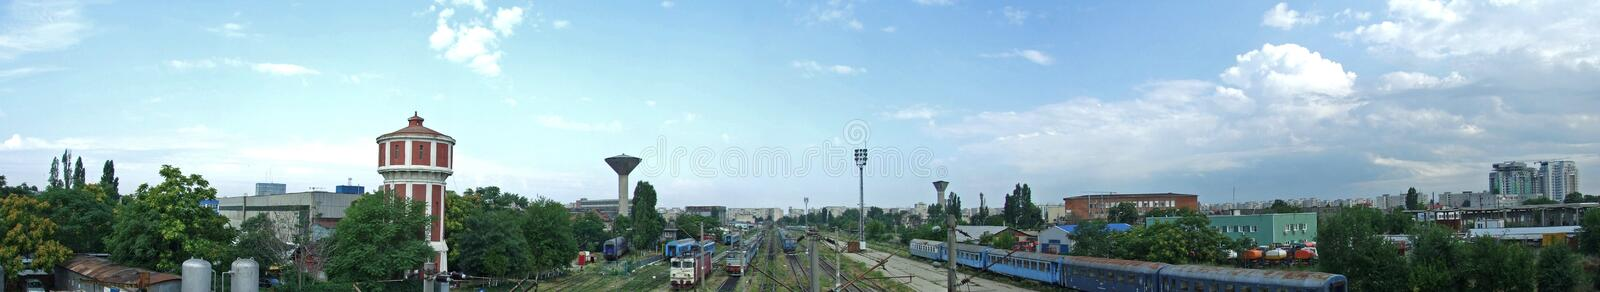 Download Train panorama stock image. Image of destinations, leaving - 10634223